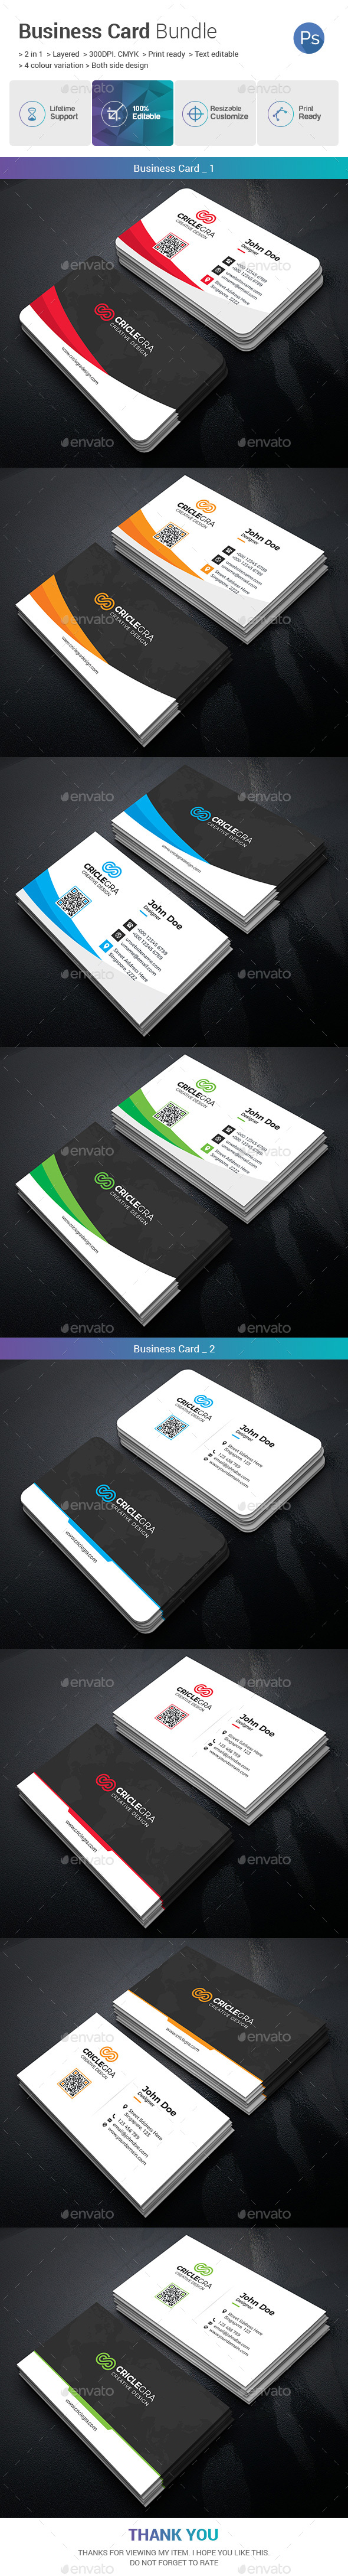 GraphicRiver Business Card Bundle 2 in 1 20950579